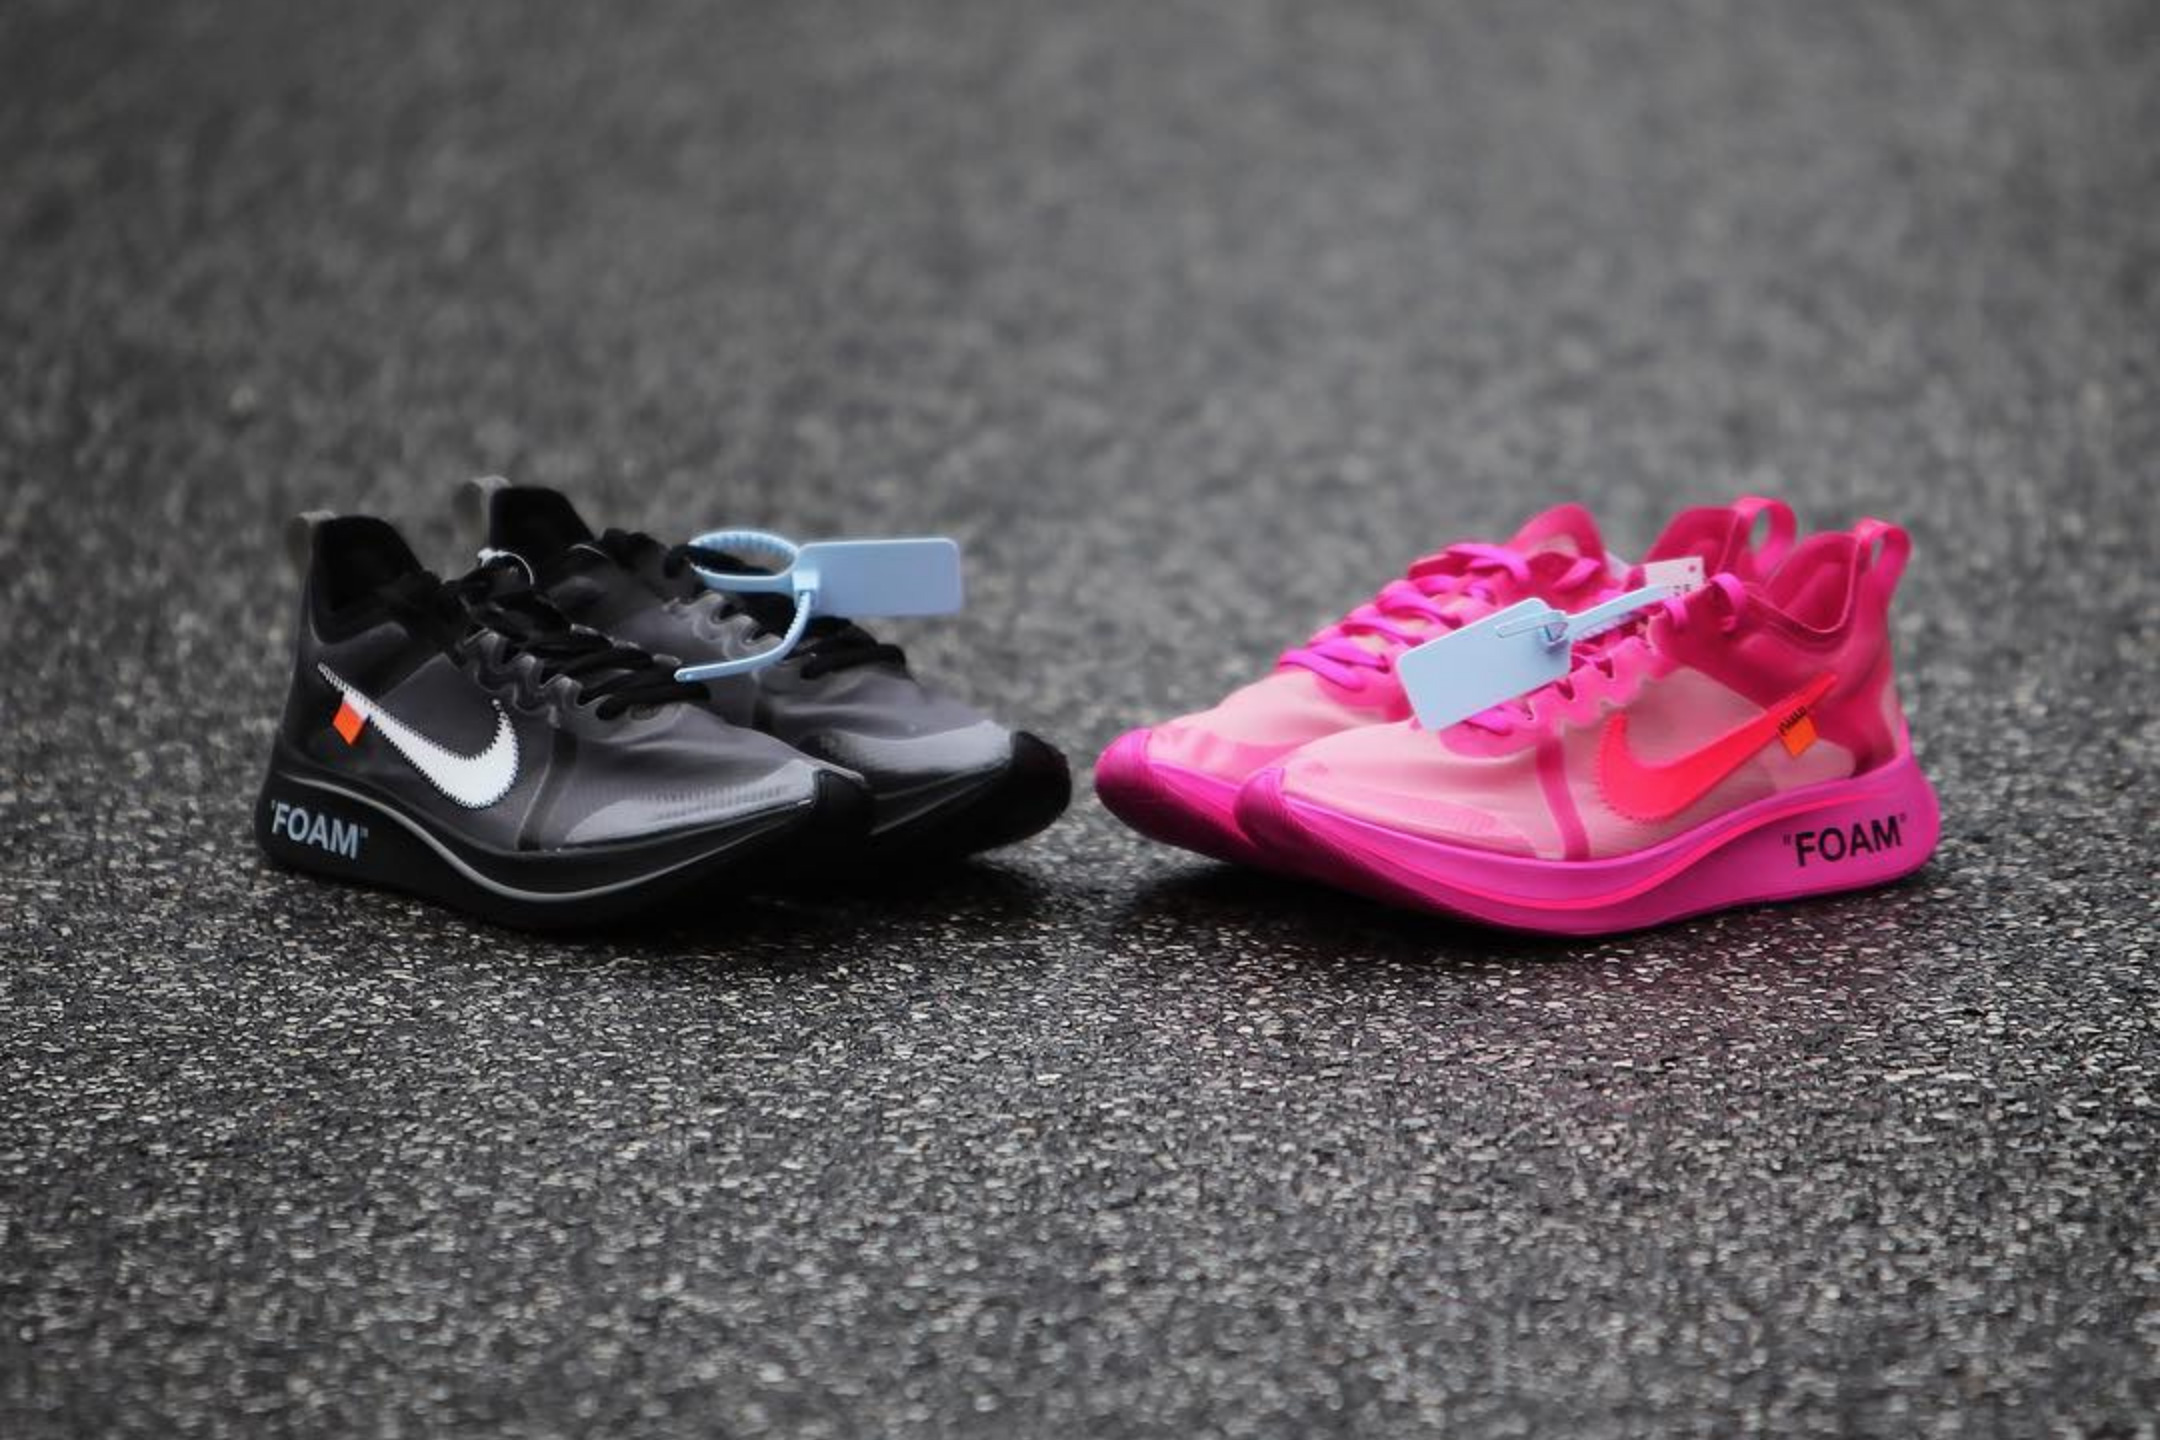 Off-White™ x Nike Zoom Fly SP Pink & Black Date